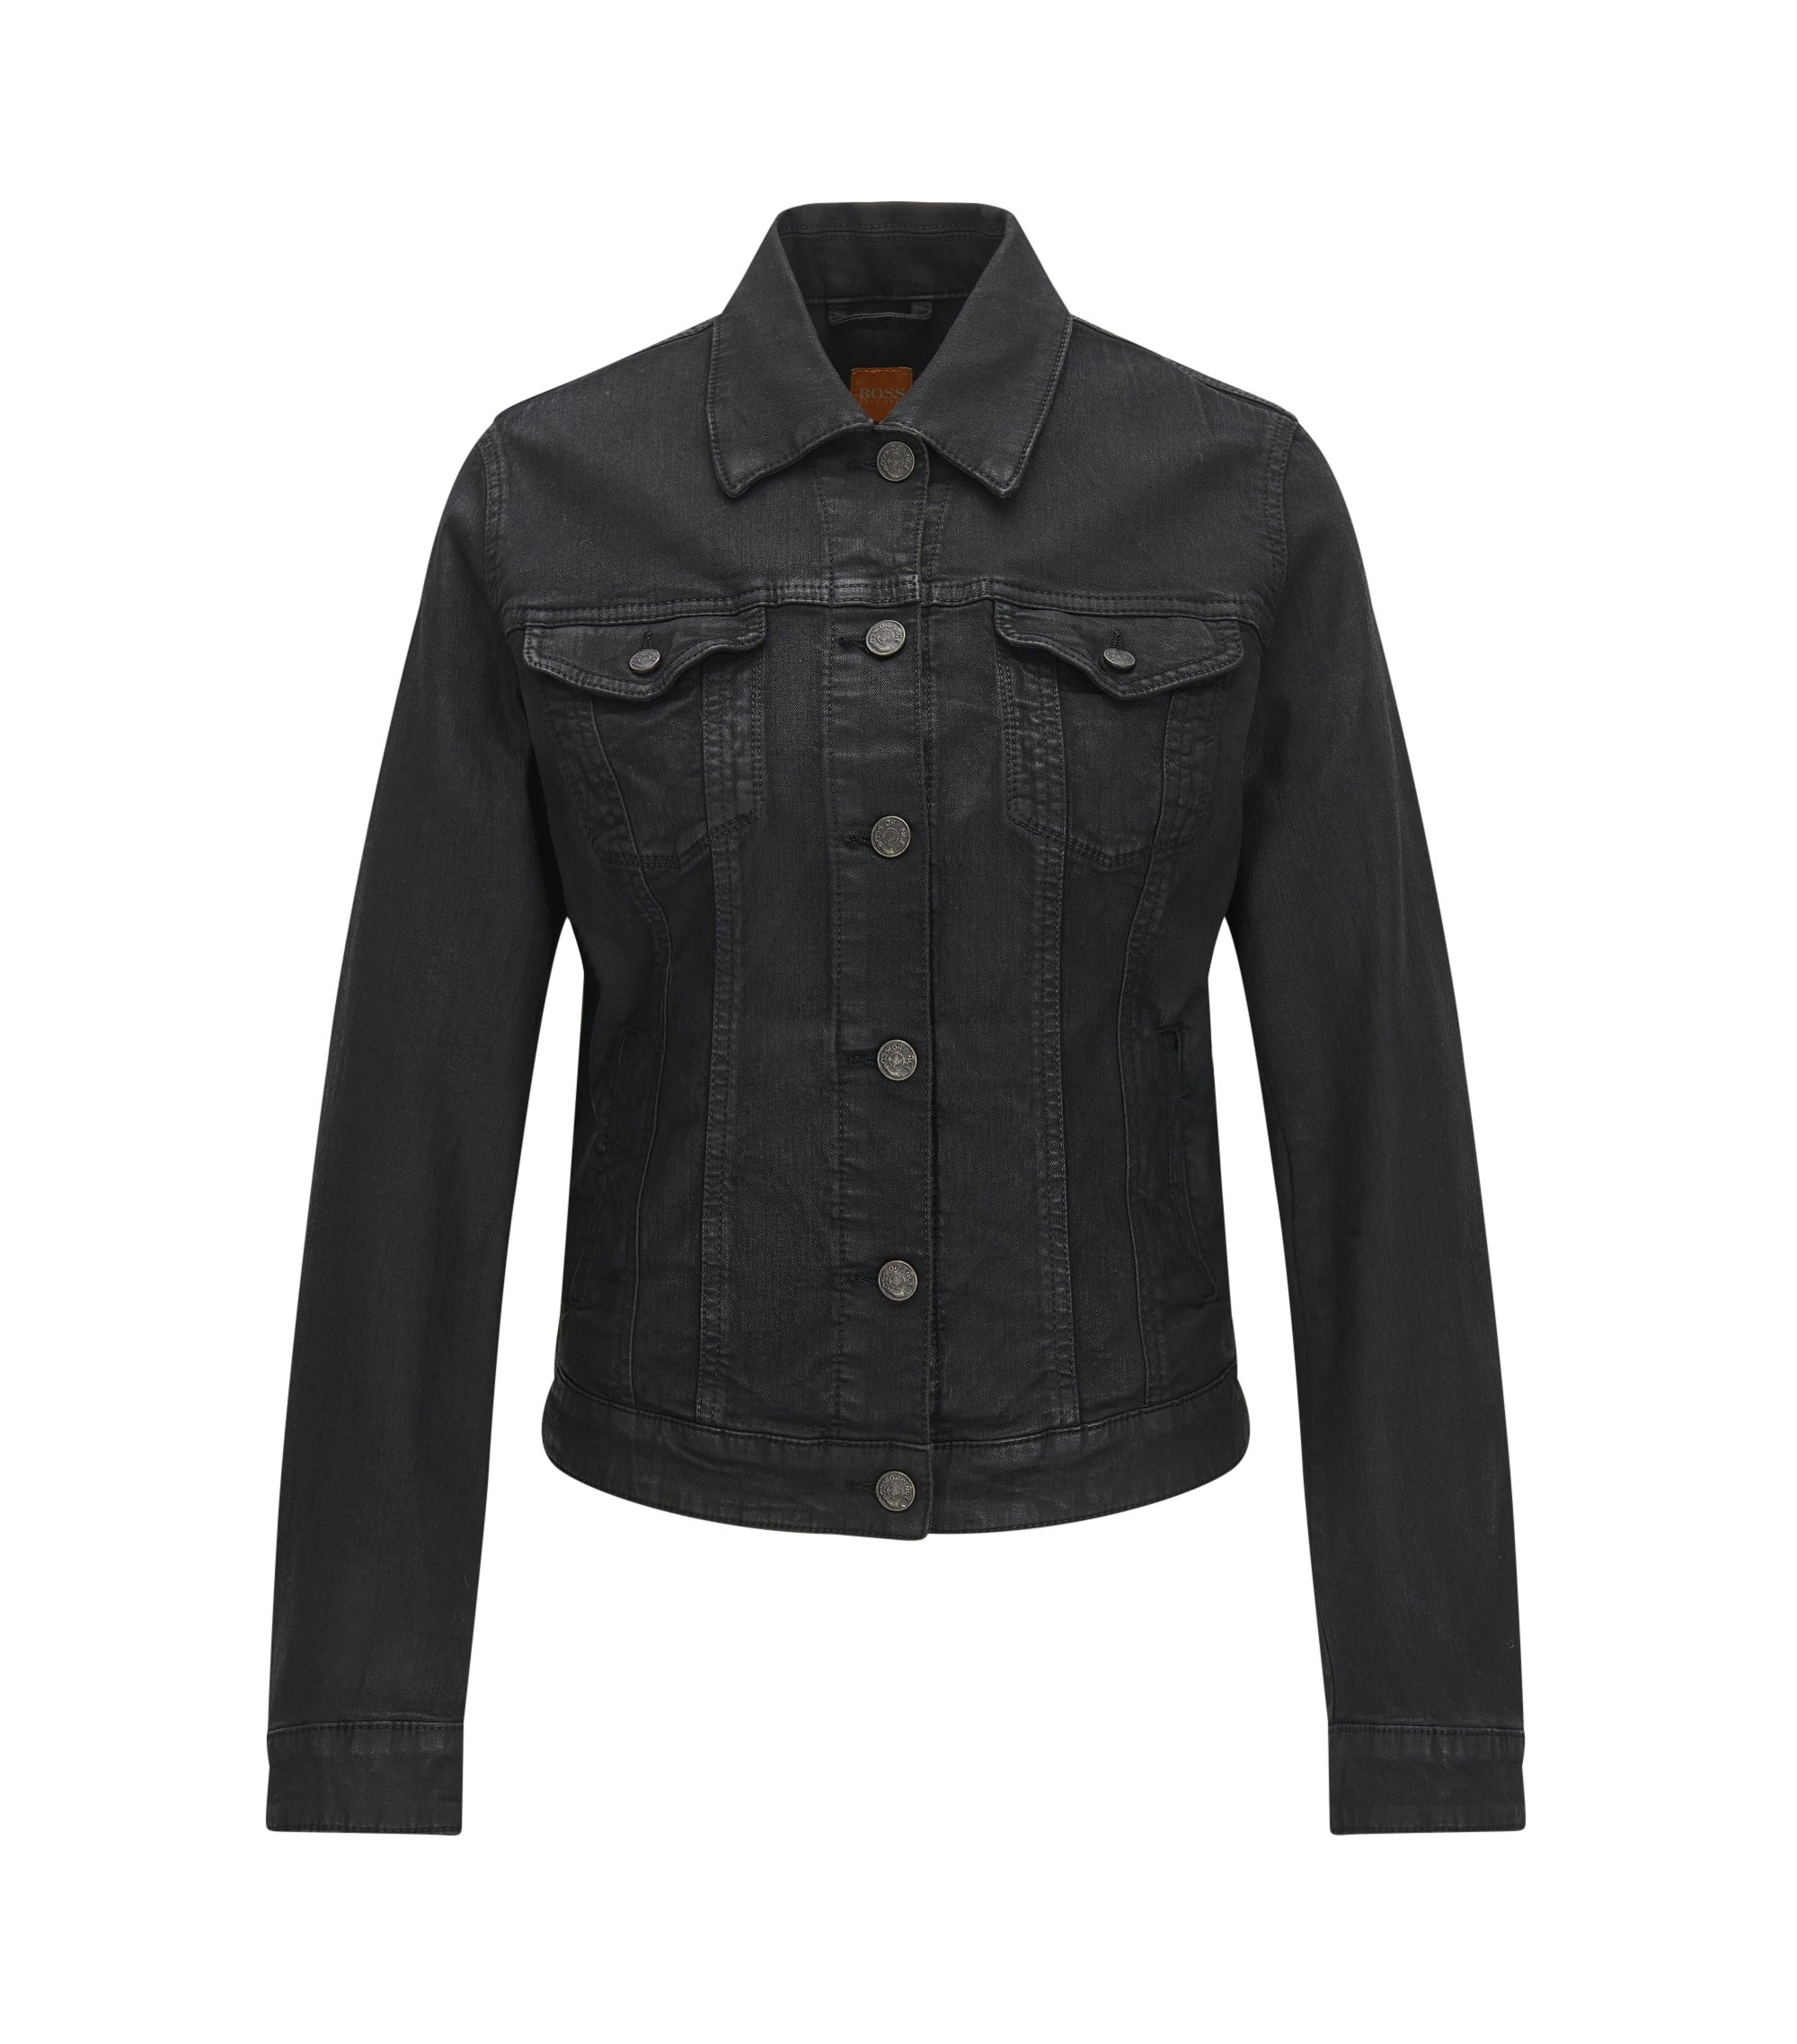 Giacca regular fit in denim elasticizzato nero con finitura lucente, Nero